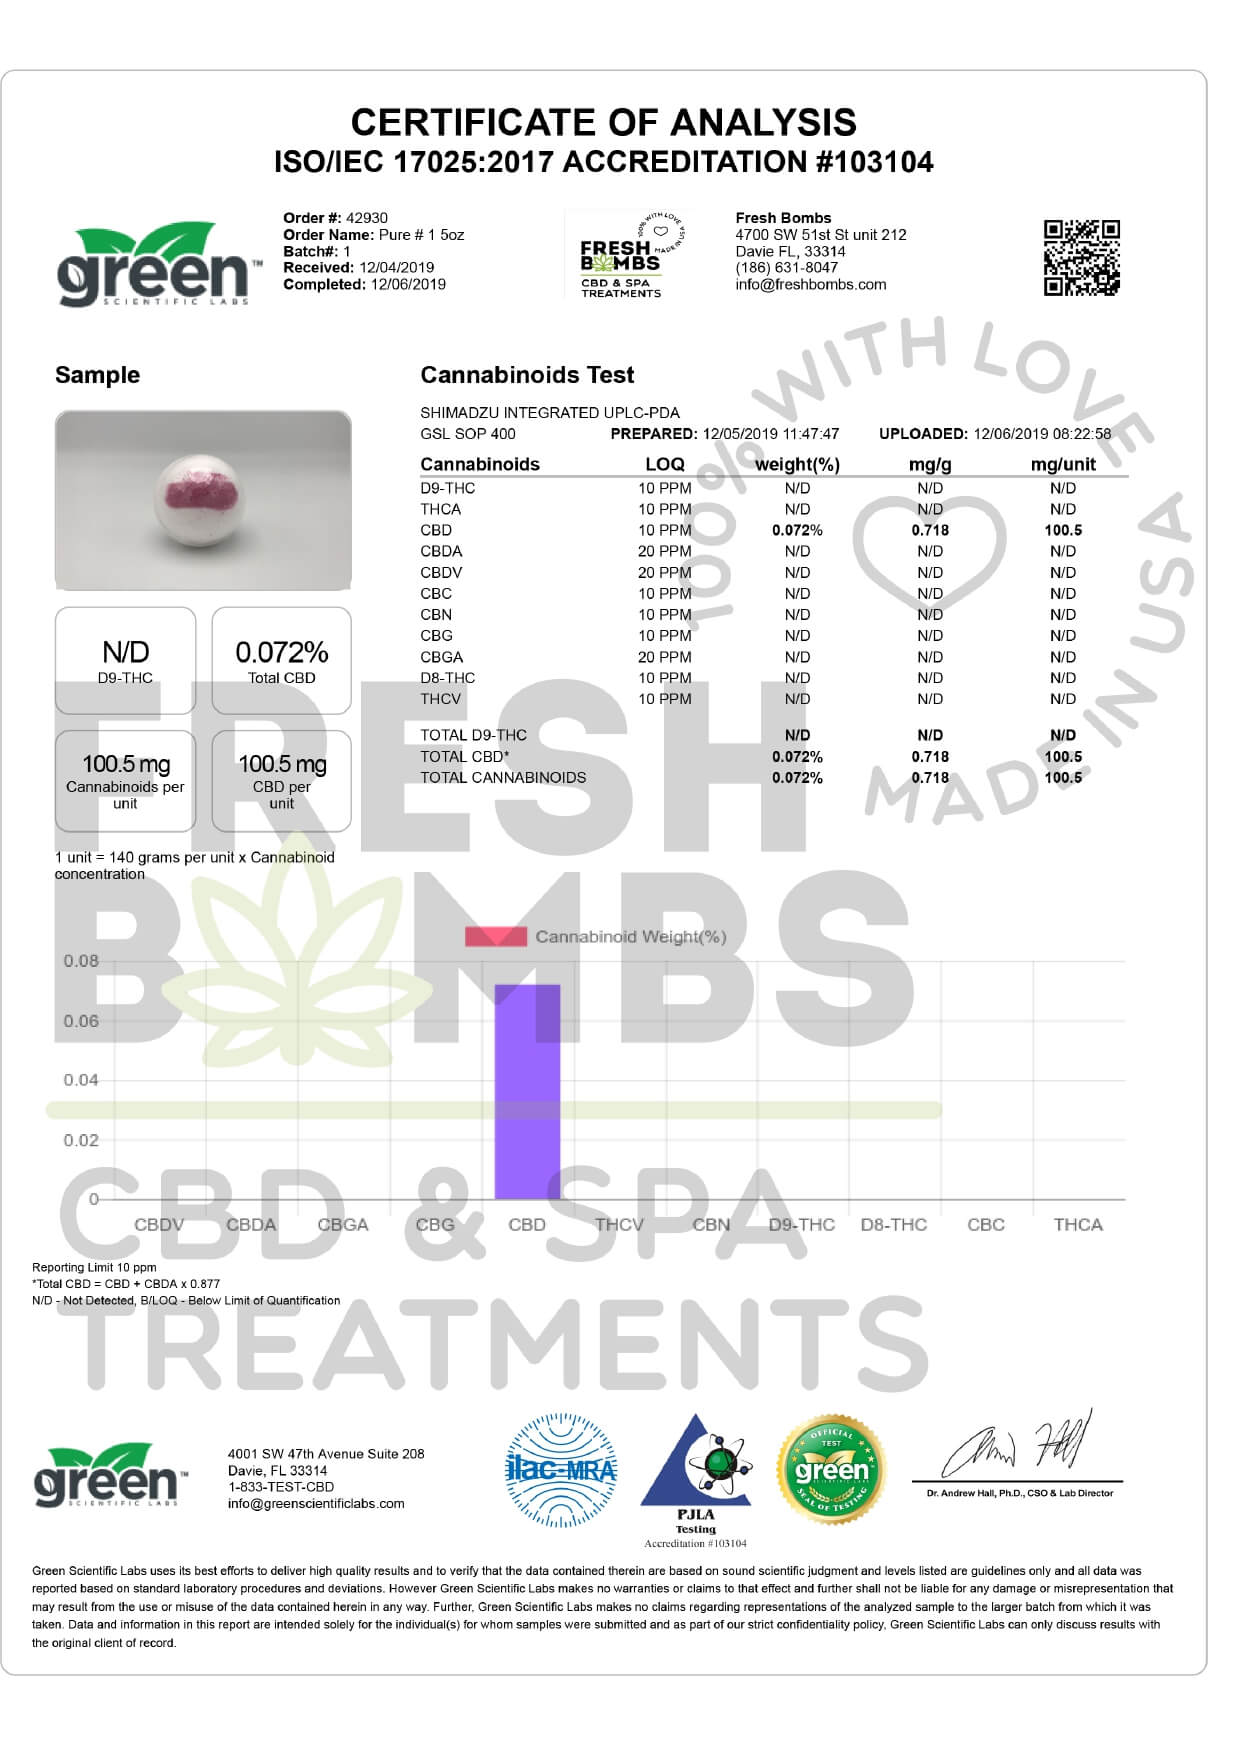 Fresh Bombs CBD Bath Pure Bath Bomb 100mg Lab Report